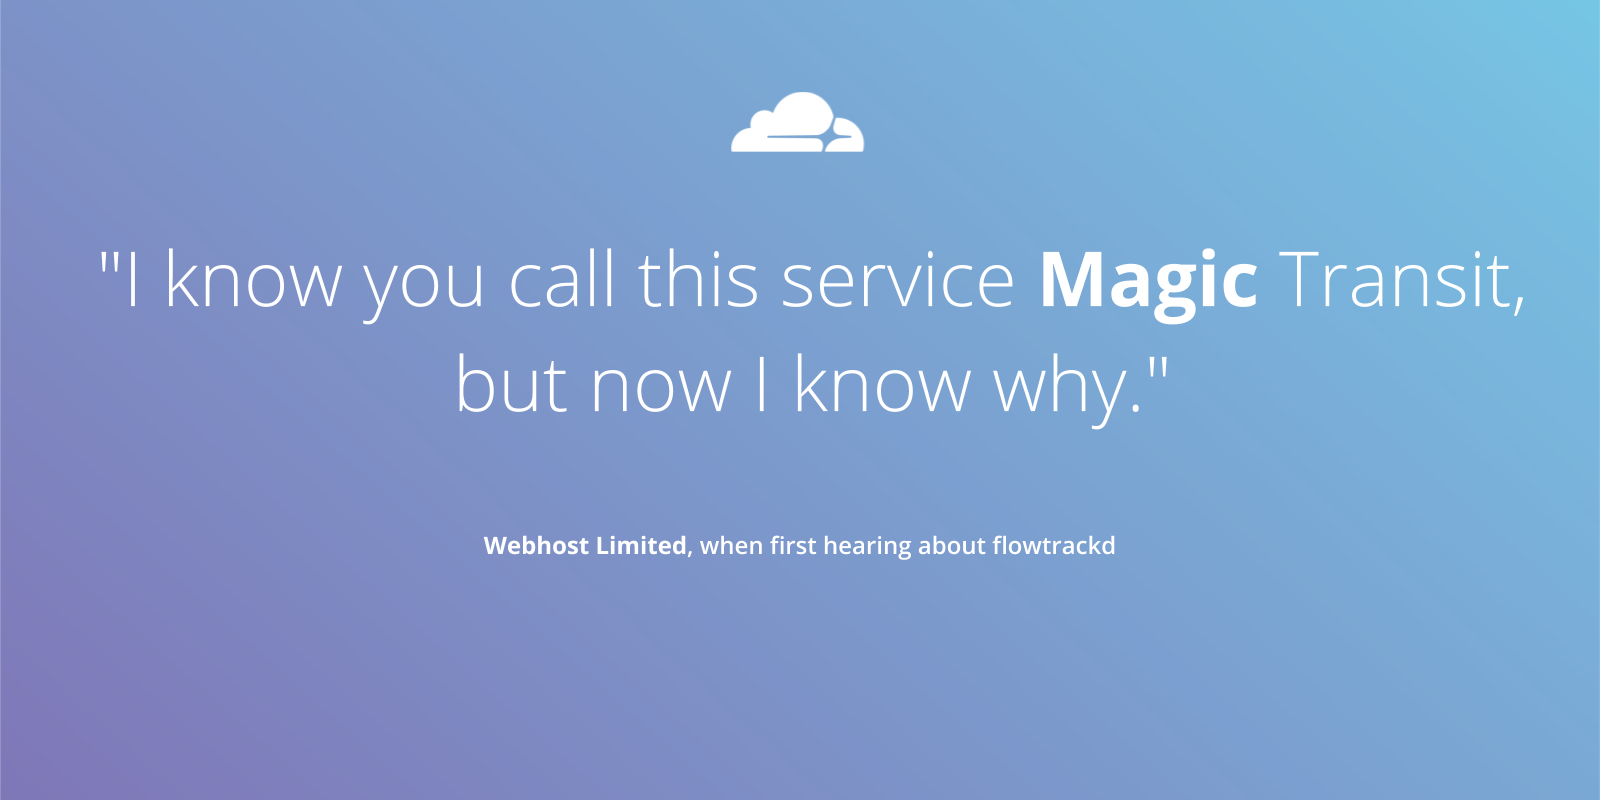 """I know you call this service Magic Transit, but now I know why."" - Webhost Limited, when first hearing about flowtrackd"